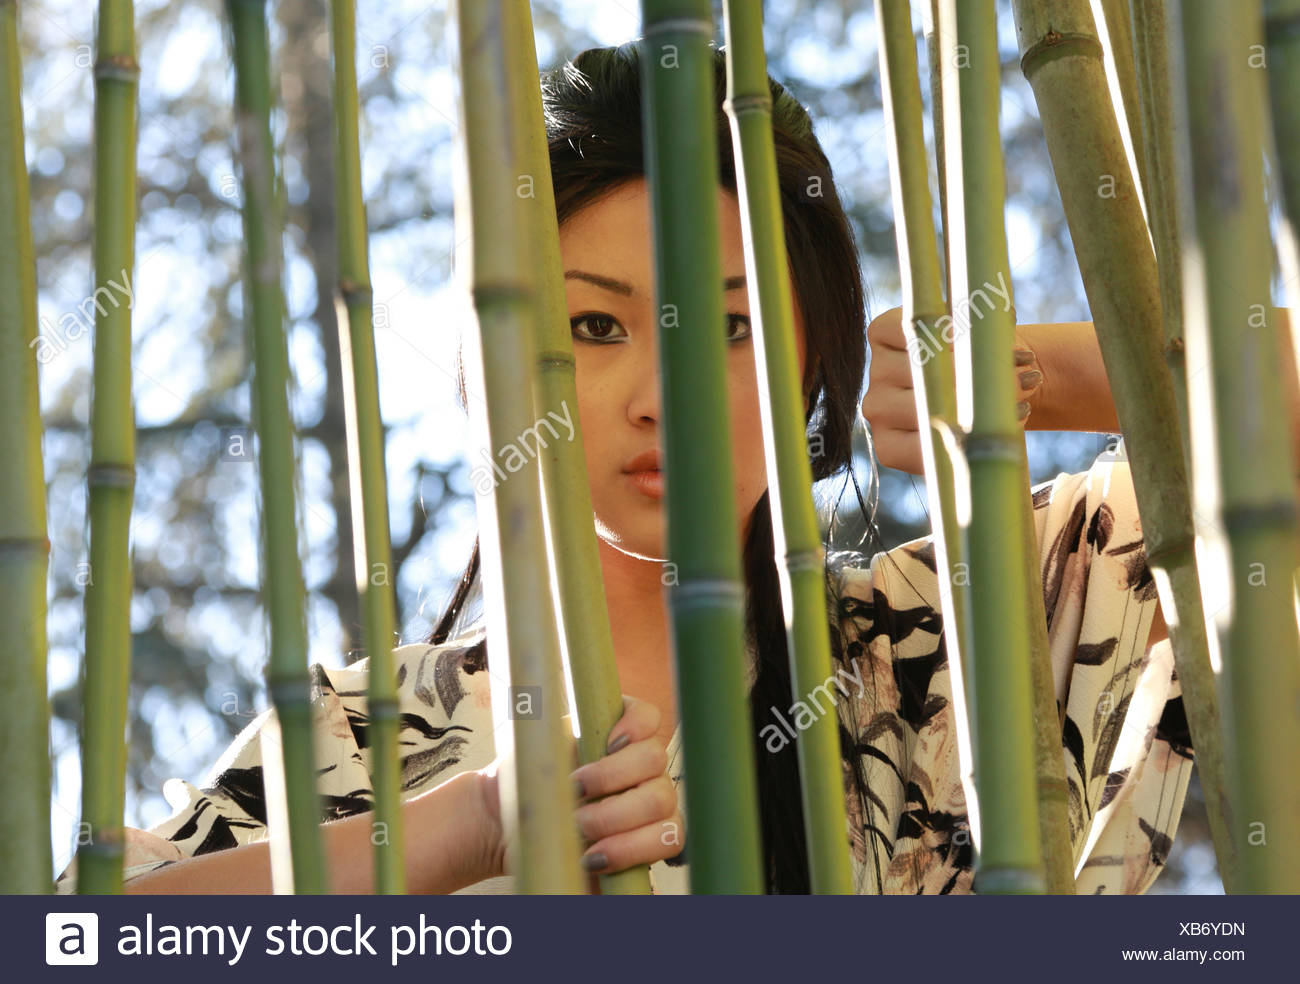 Close Up Of Woman Looking Through Bamboo Plants Stock Photo